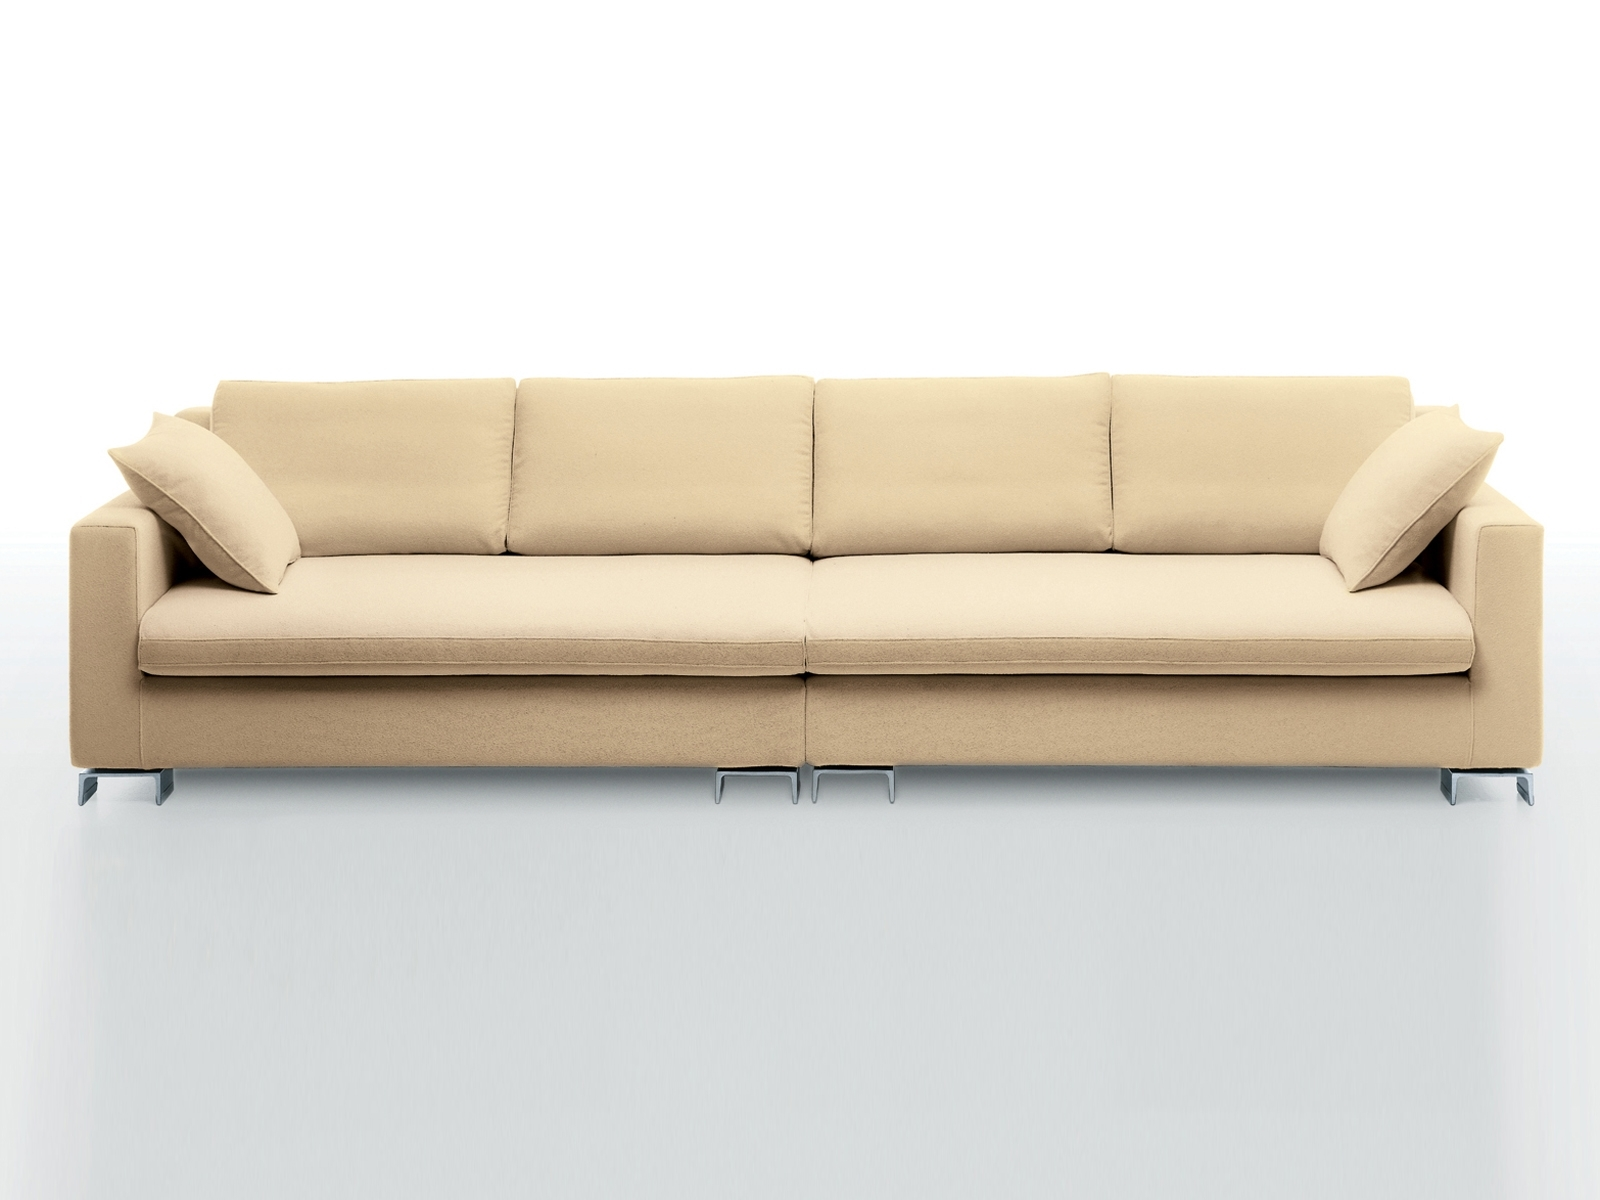 2018 4 Seater Sofa For Large And Trendy Living Room Within 4 Seater Sofas (View 12 of 20)